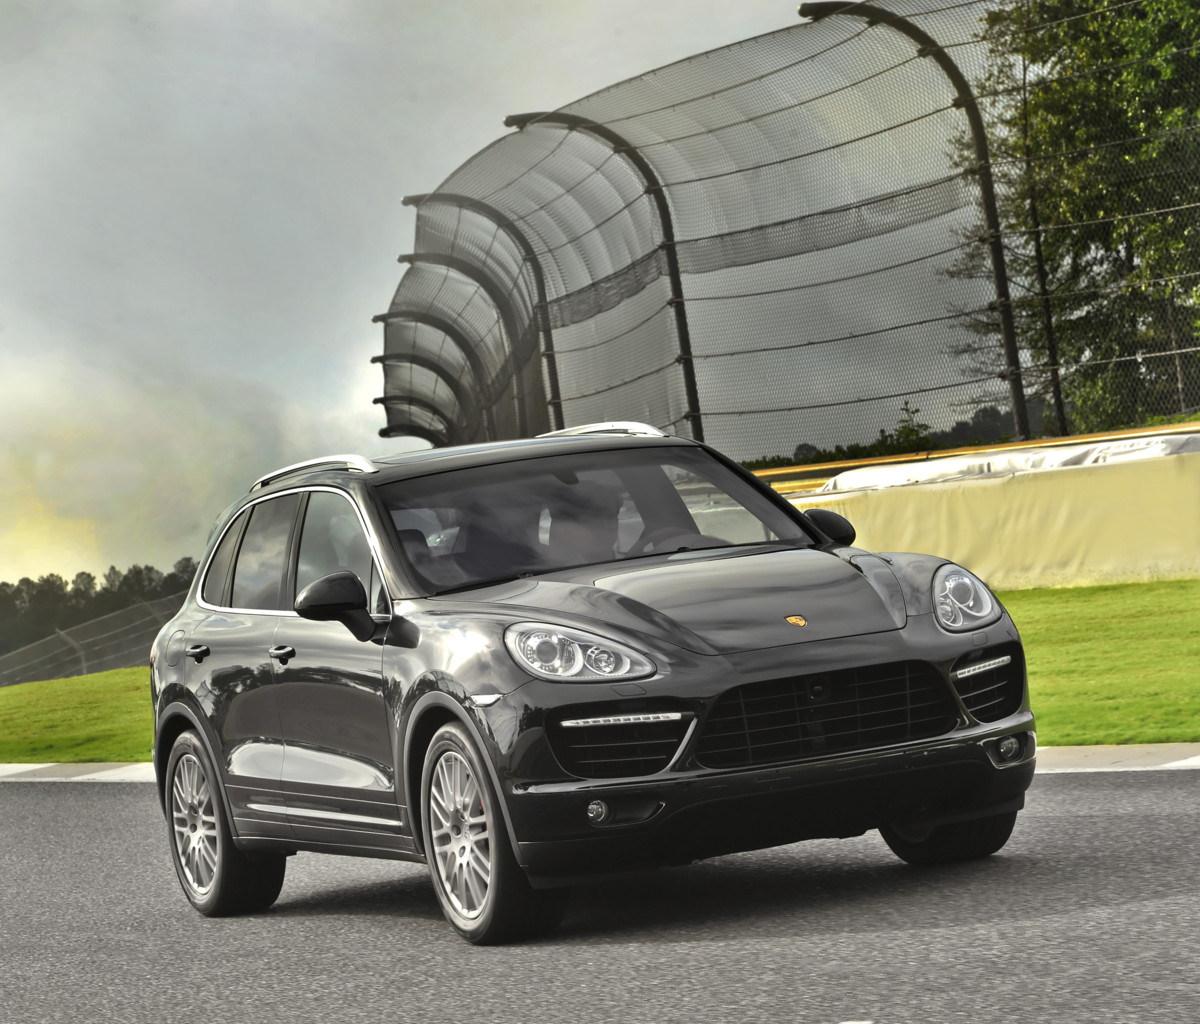 Porsche Cayenne, Panamera recalled for potential engine problem